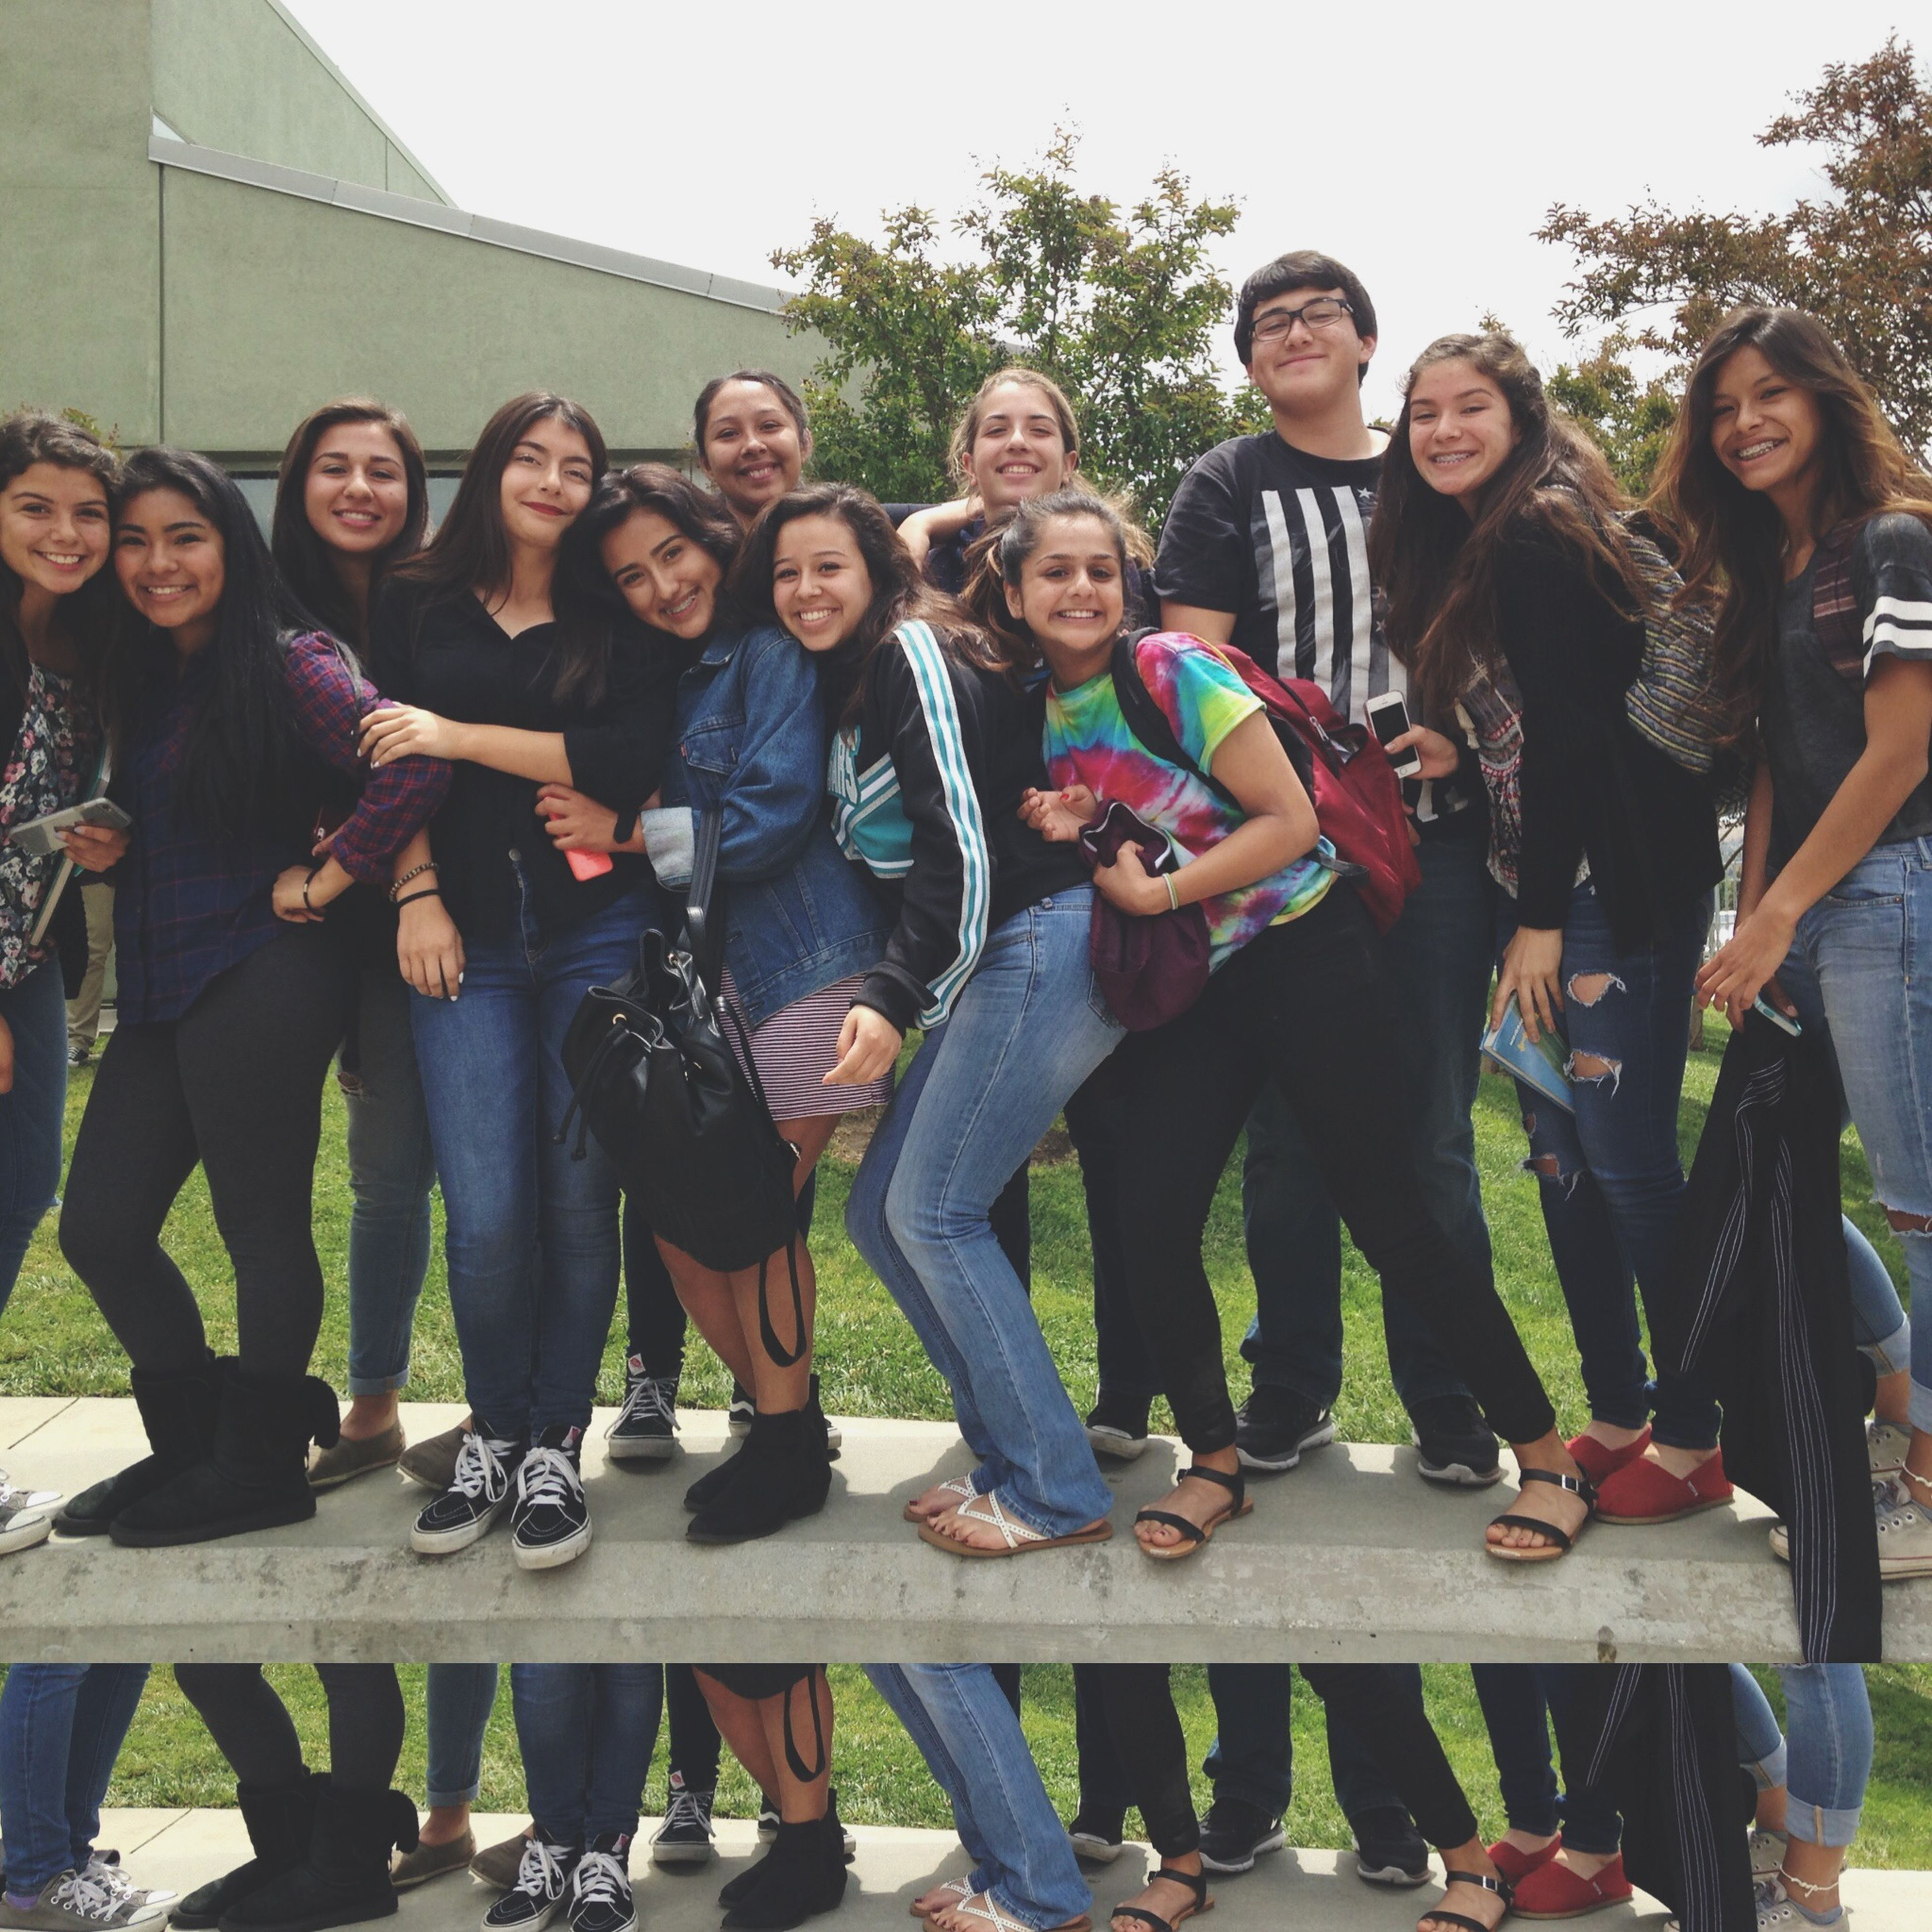 lifestyles, leisure activity, togetherness, casual clothing, enjoyment, happiness, large group of people, friendship, fun, person, bonding, full length, young adult, young women, standing, love, smiling, men